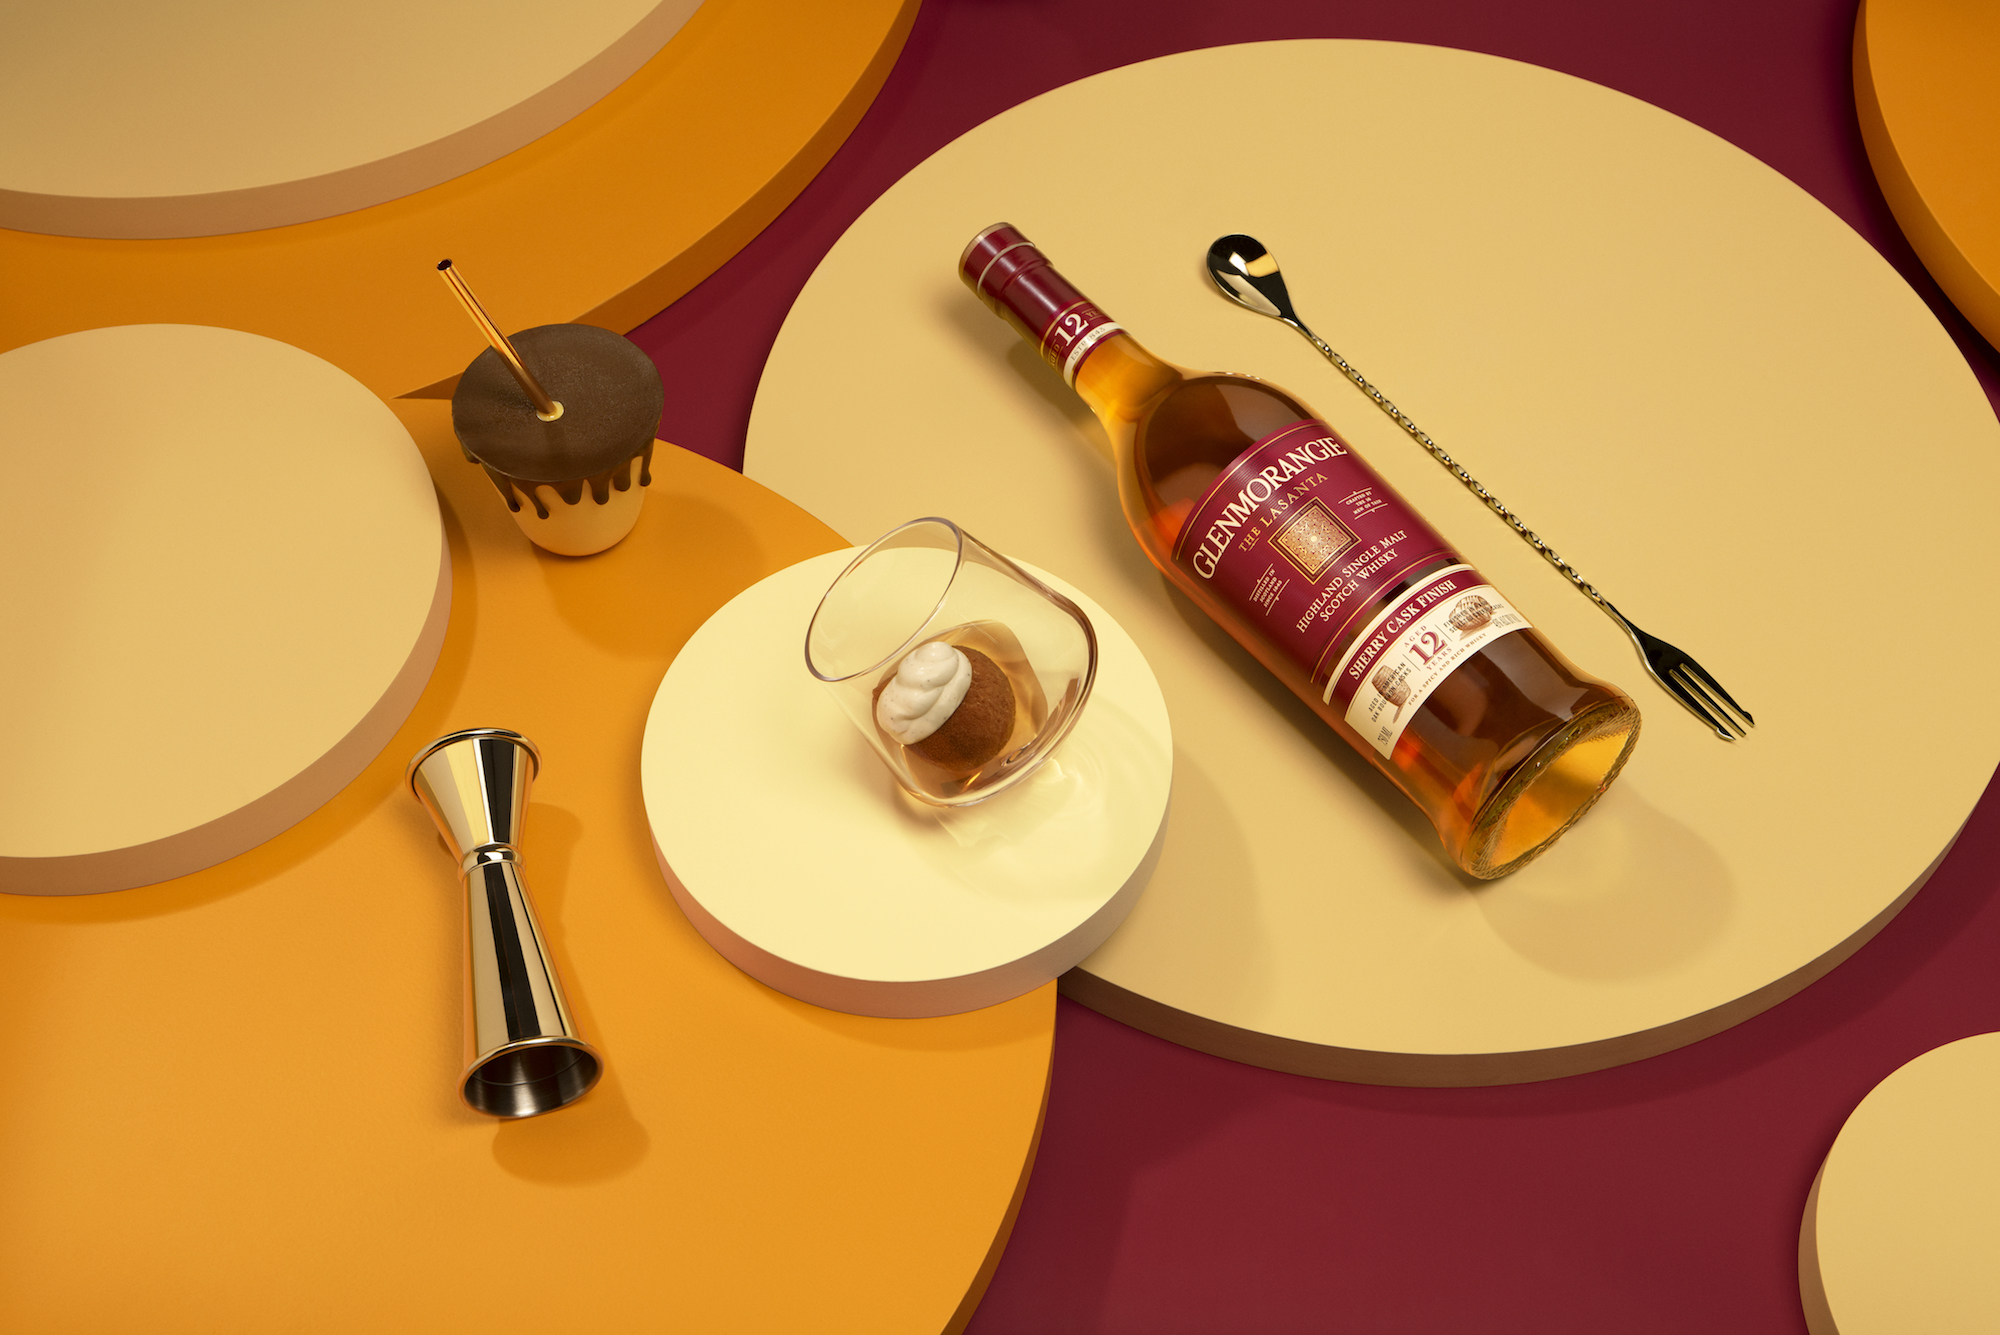 Dominique Ansel for Glenmorangie's A Tale of Cake Lasanta